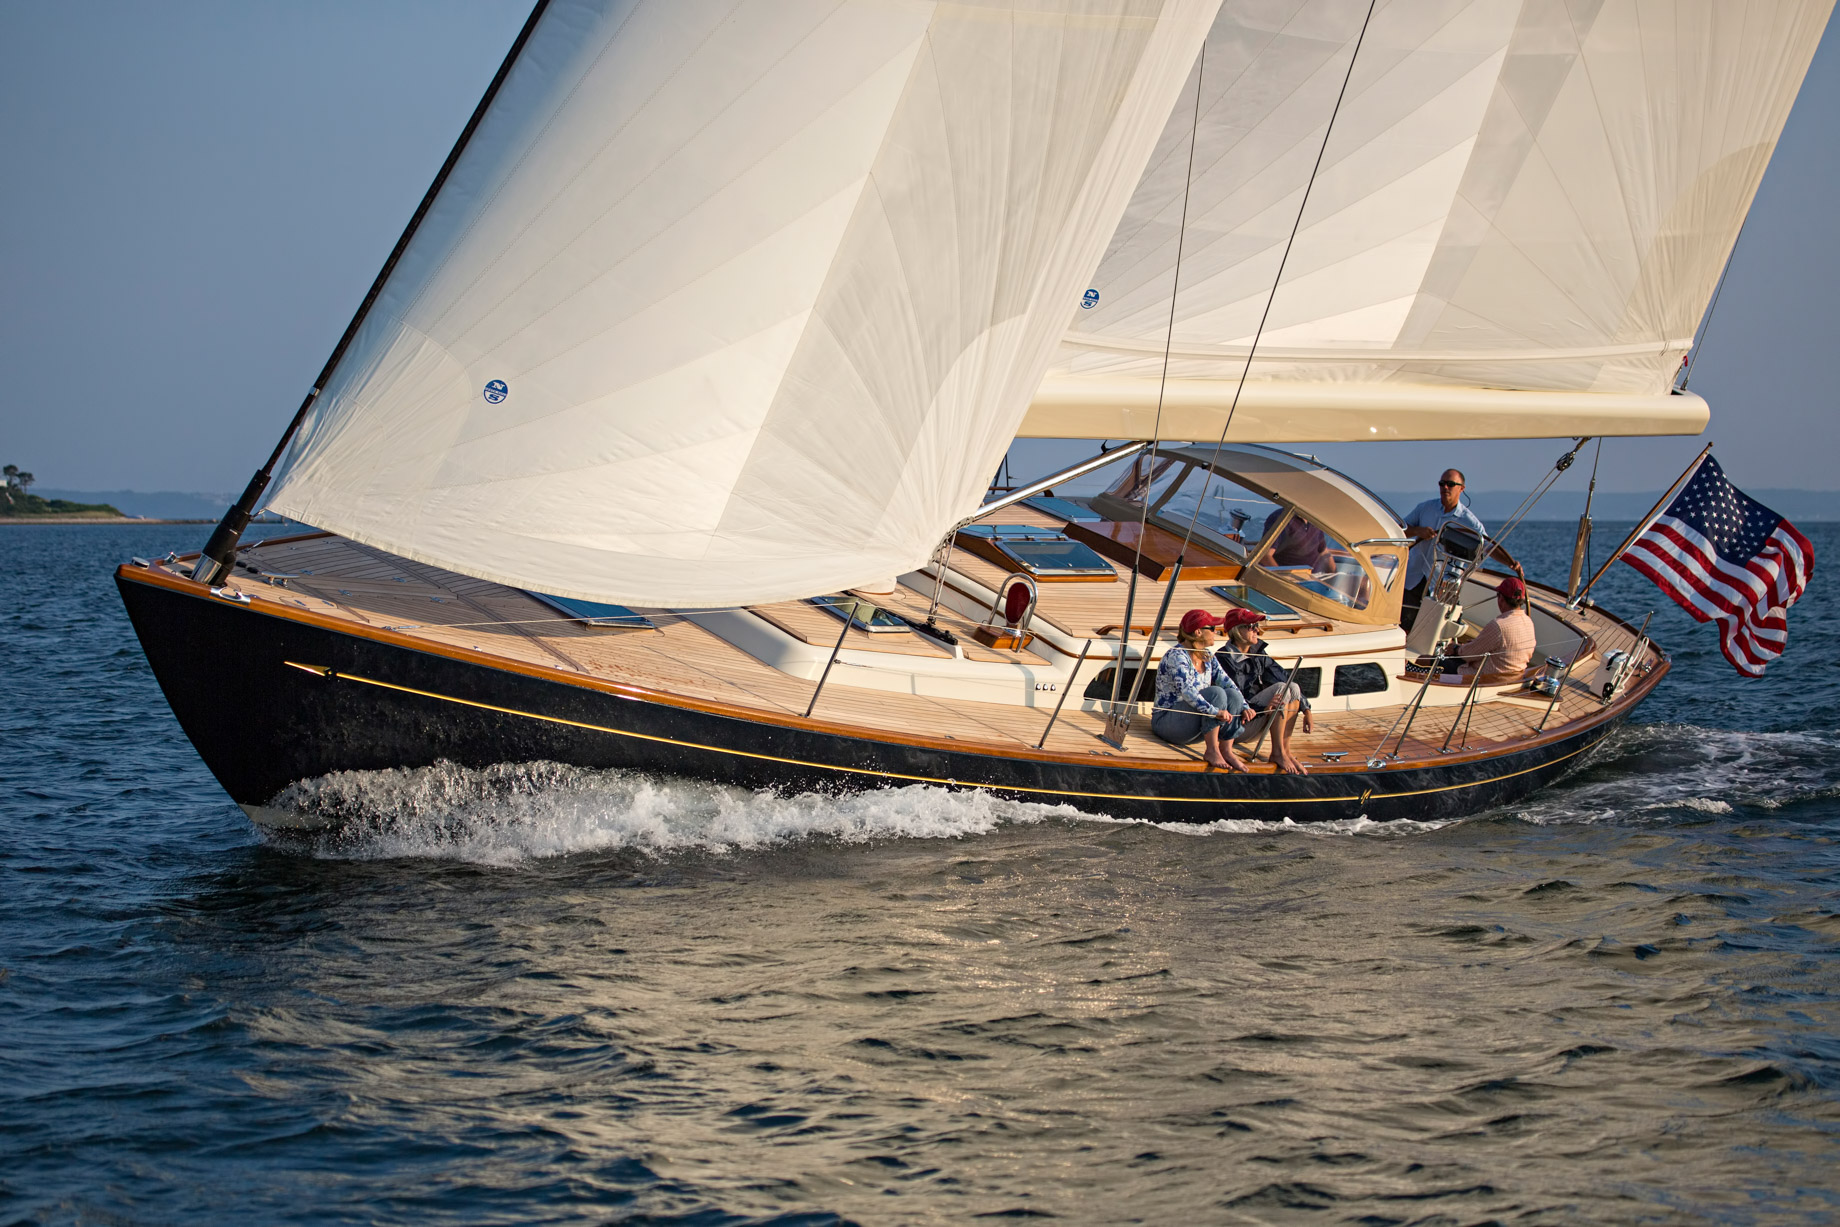 Morris Yachts - New Yachts and Powerboats for the Luxury Boat Market